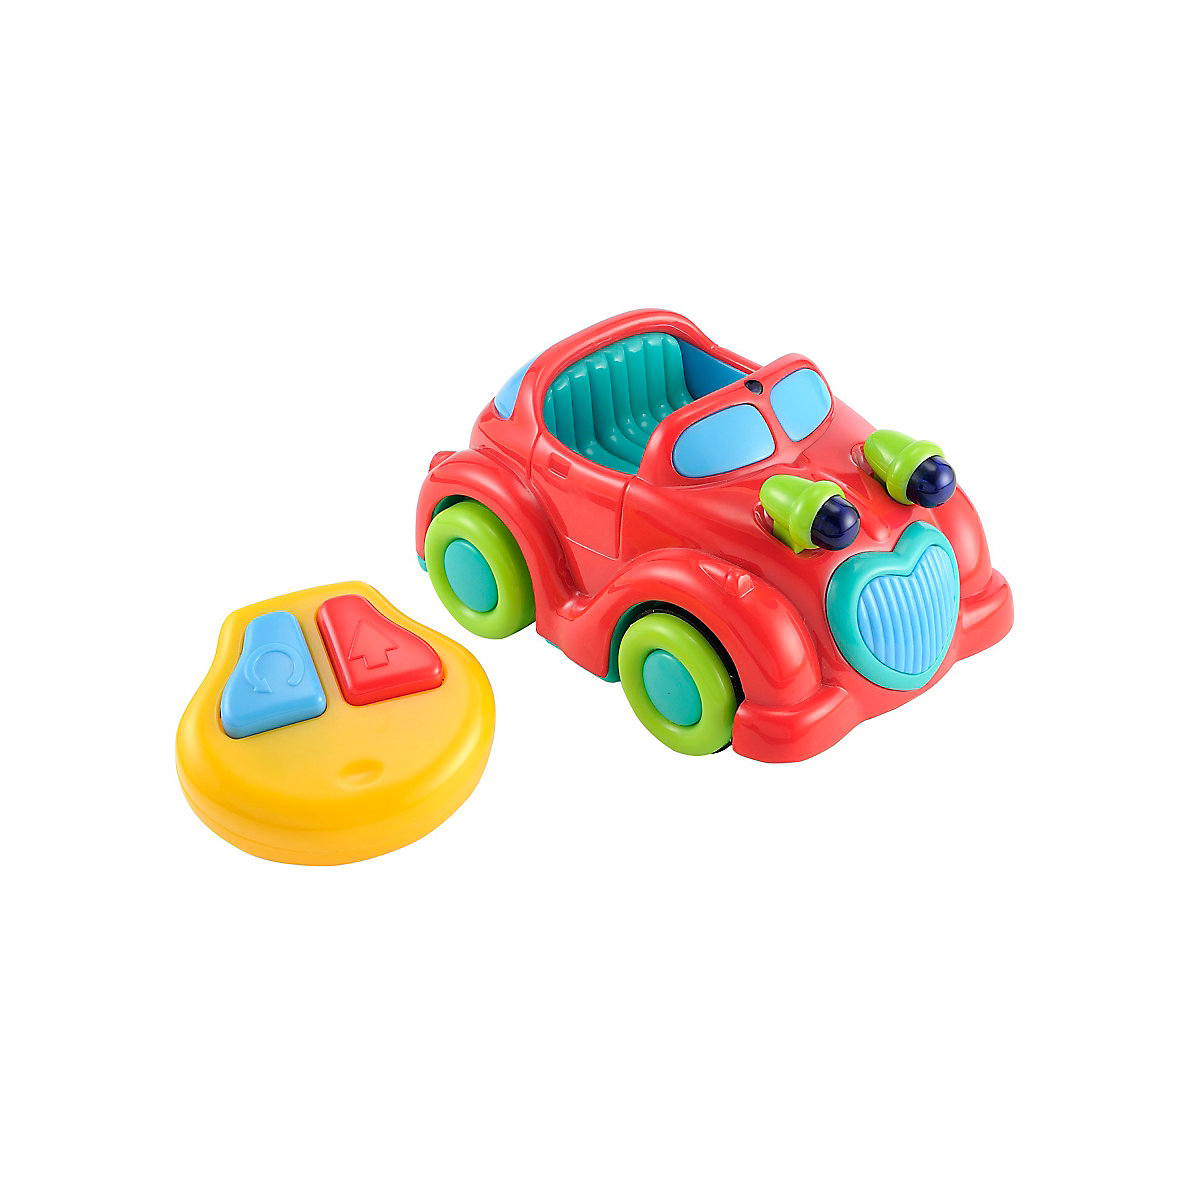 New ELC Boys and Girls Whizz World Crazy Convertible Toy From 18 months